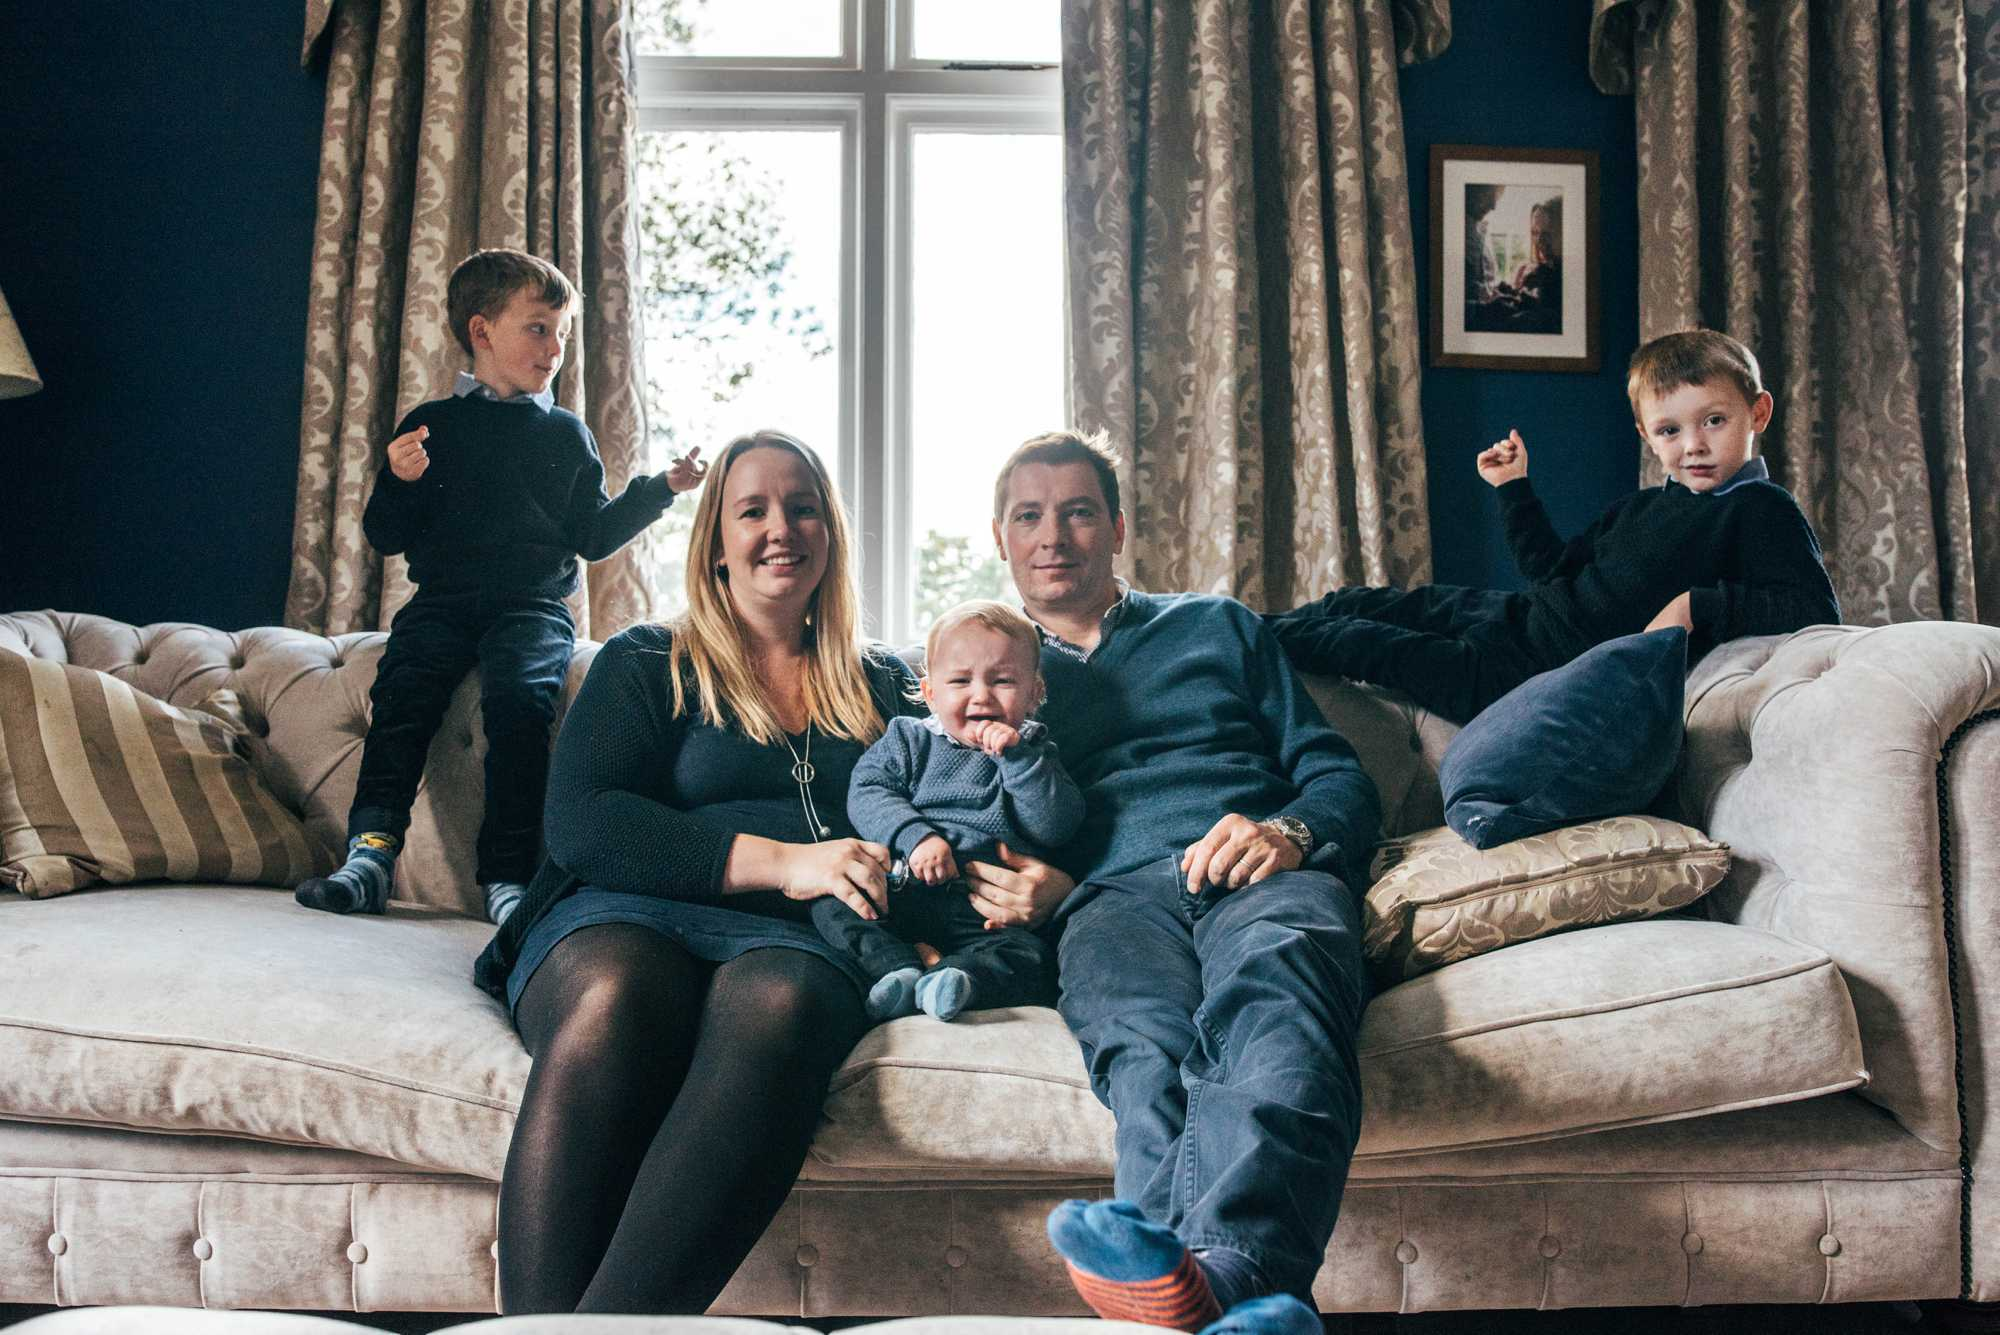 Essex Documentary Photographer Family Portraits at Home Relaxed shoot